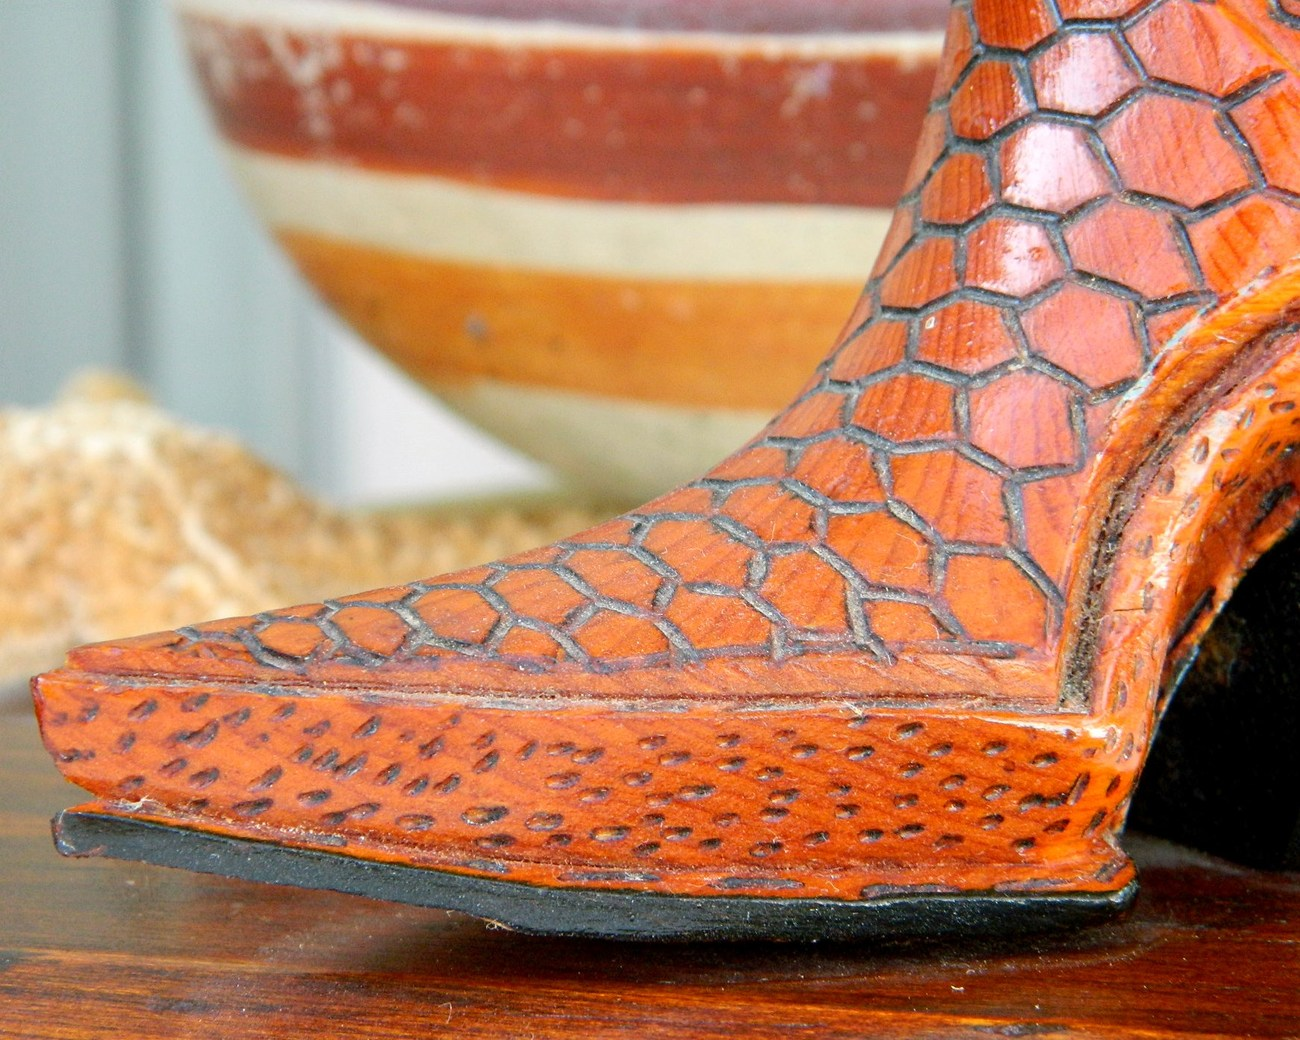 Cowboy_boot_close_up